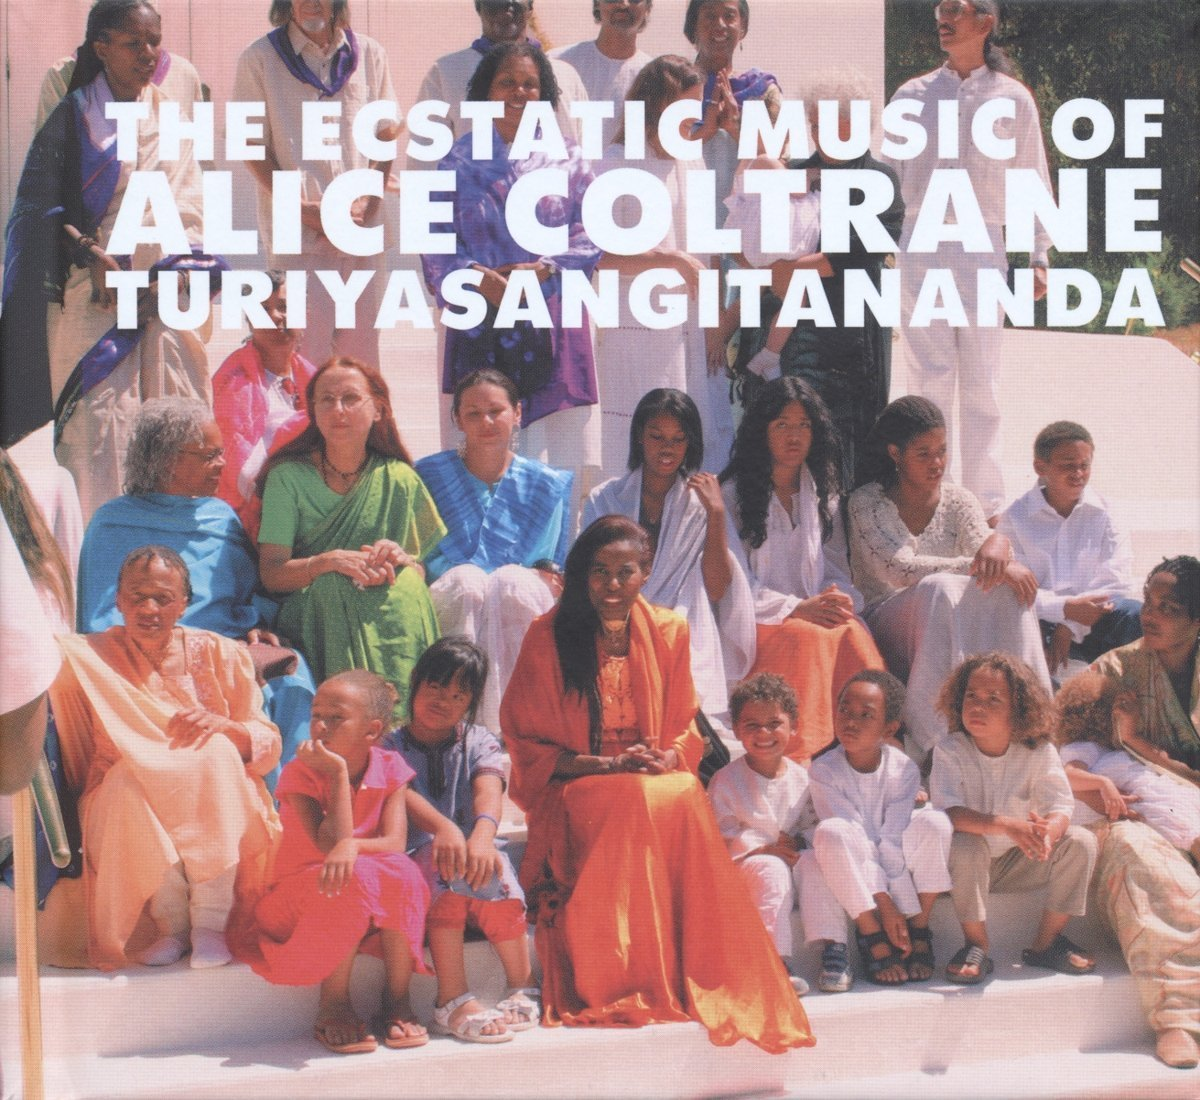 Cassette : Alice Coltrane - World Spirituality Classics 1: Ecstatic Music (Digital Download Card)